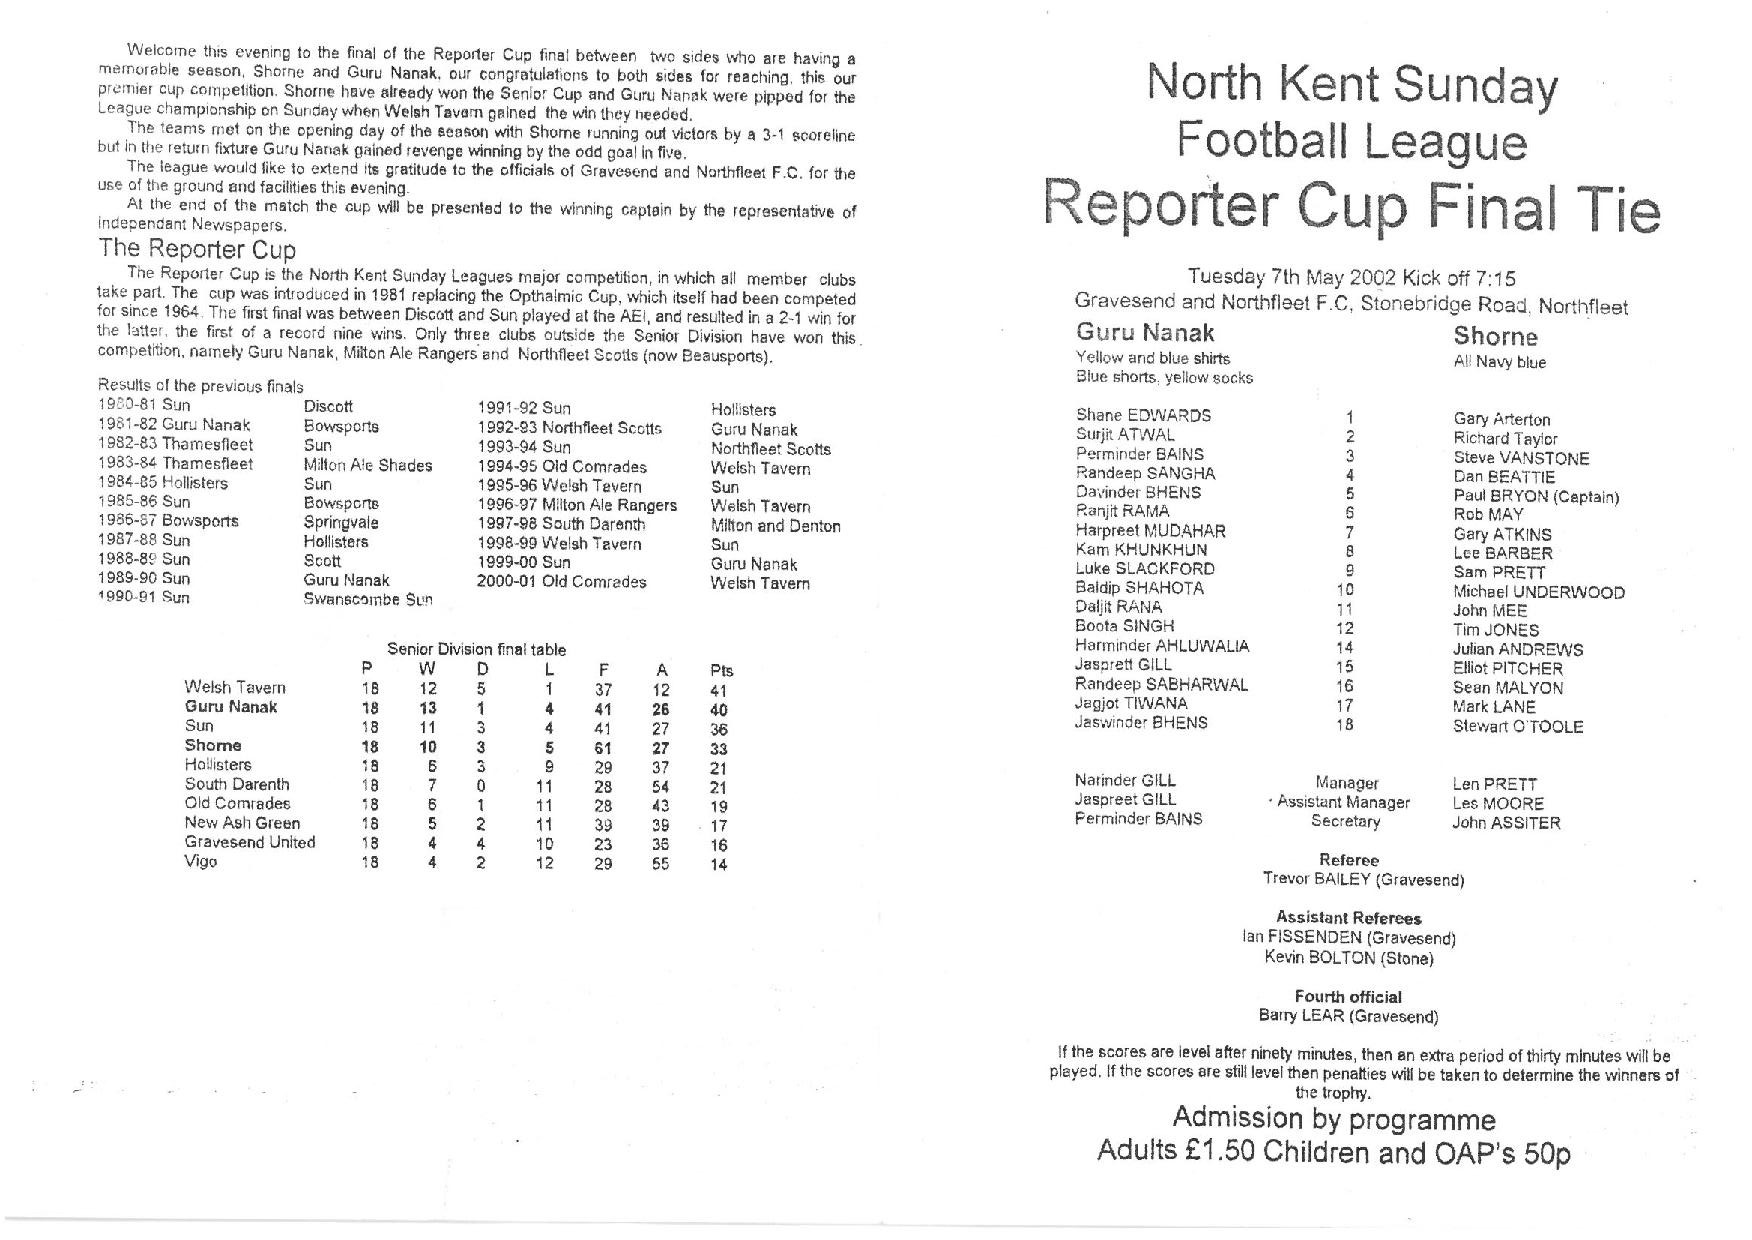 Reporter Cup Final 2002